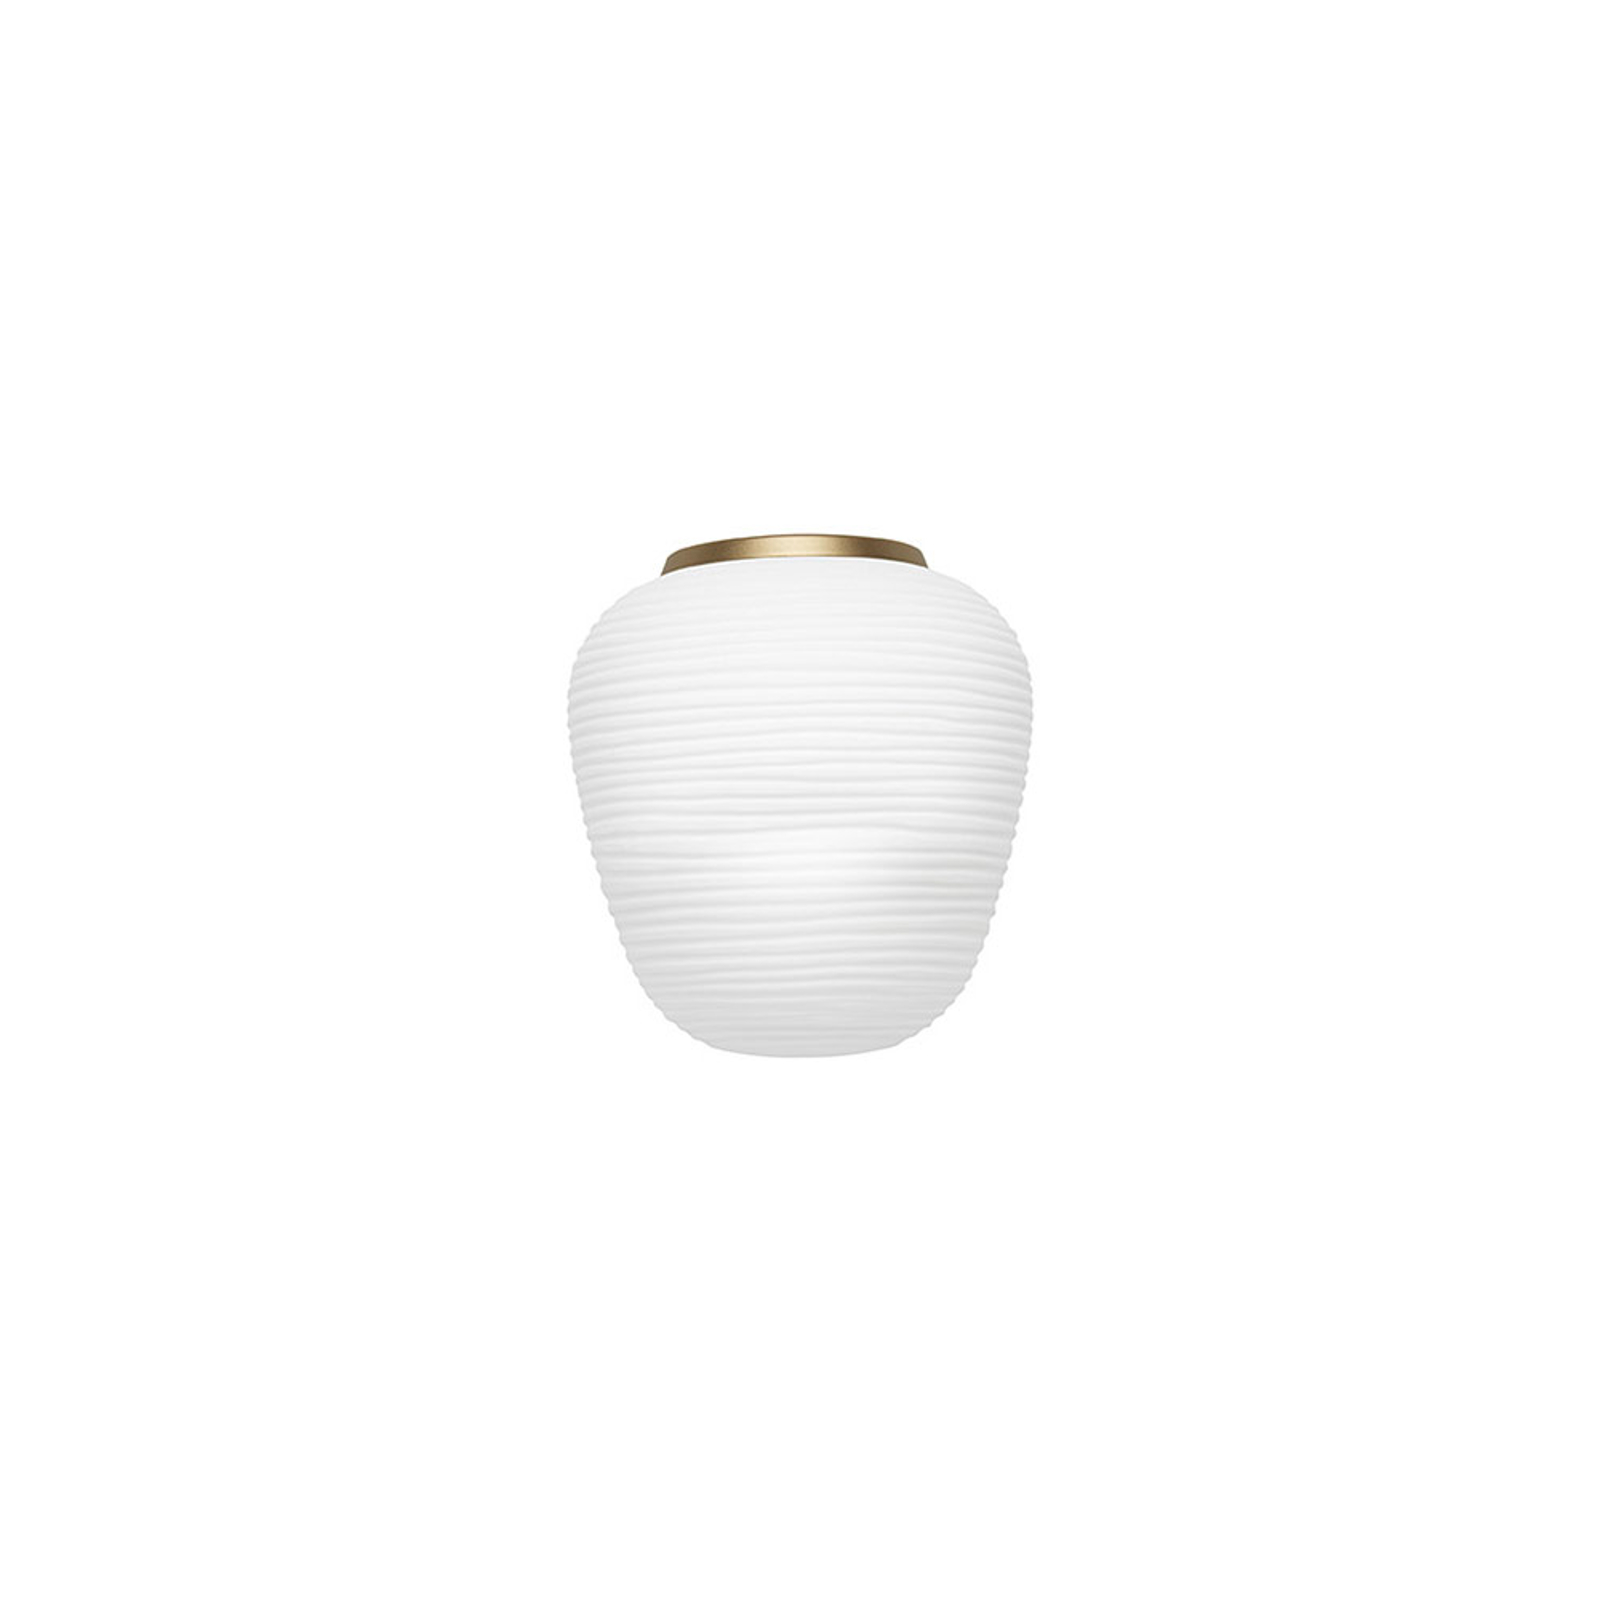 Foscarini Rituals 3 semi applique, oro